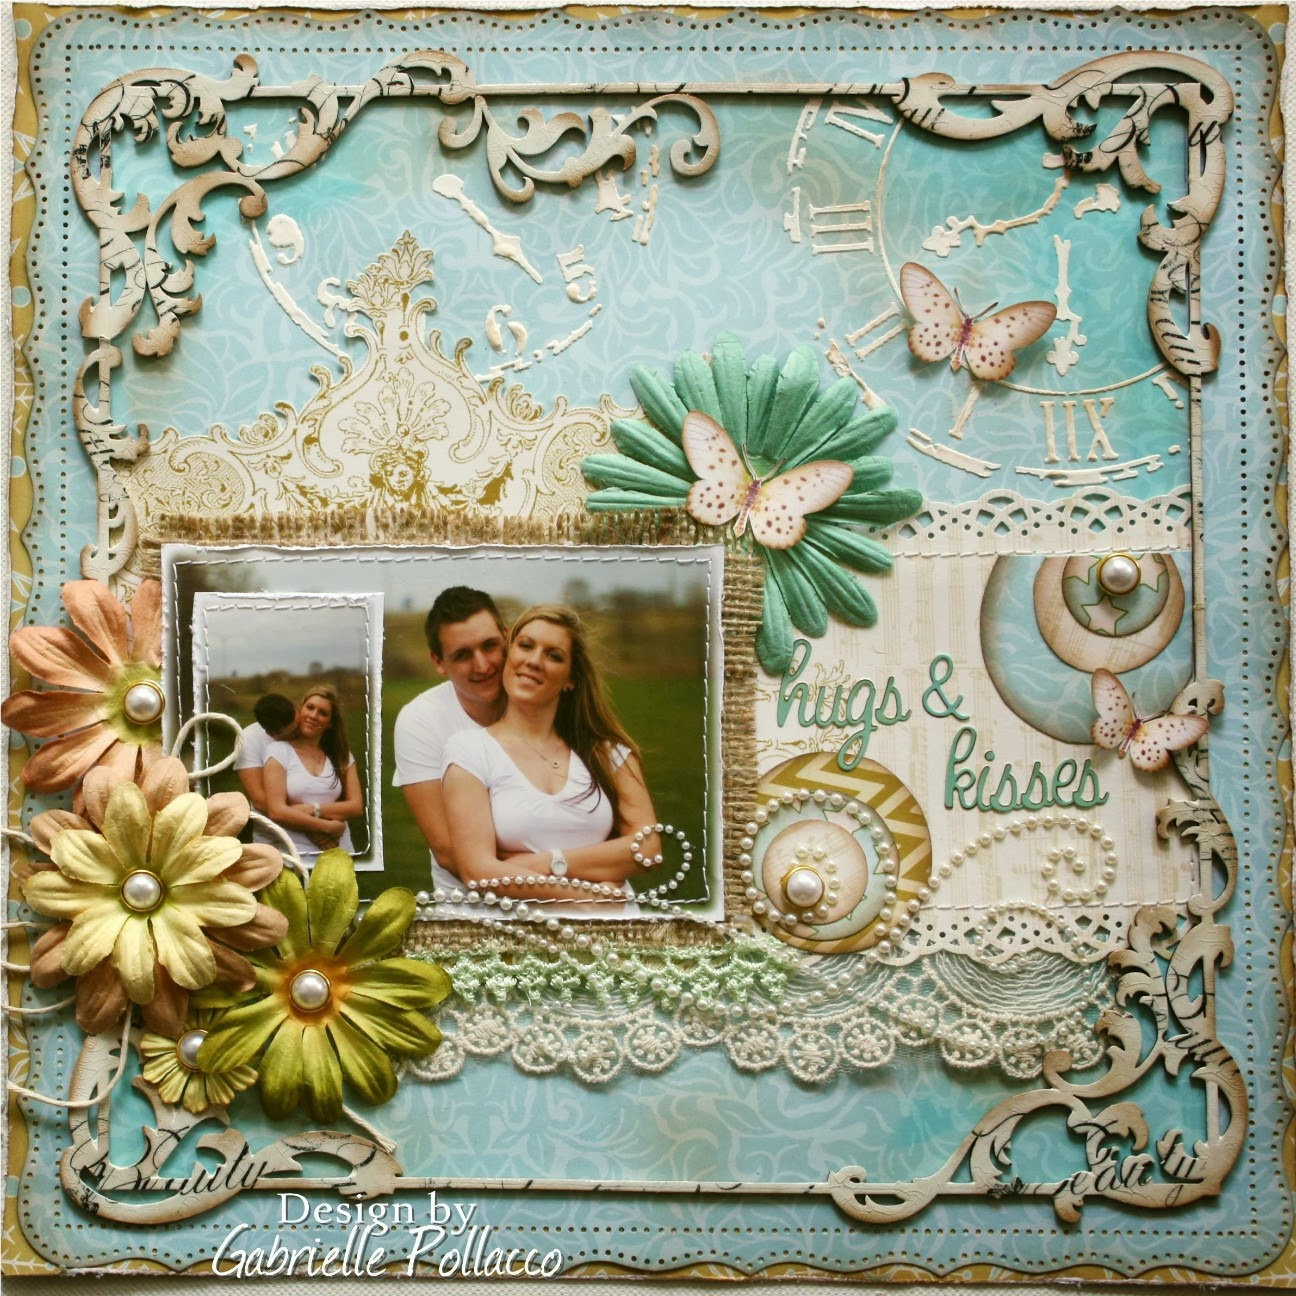 Scrapbook ideas romantic - Here Is Another Page I Made From The Same Collection Using The Golds And Soft Turquoise Blues I Wanted To Go For More Of A Romantic Look For This Page As